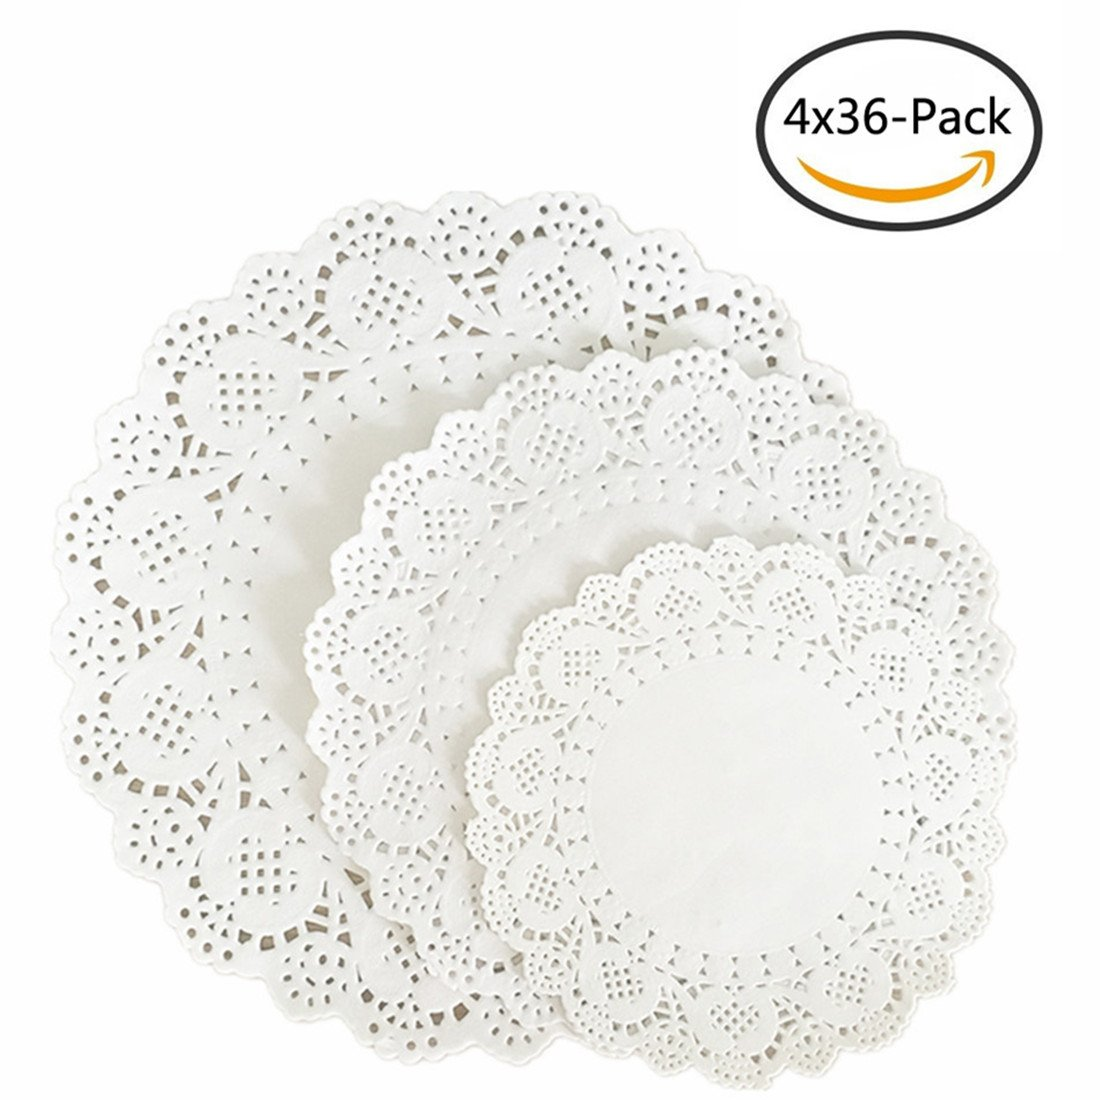 8 Inch Non-Stick Baking Round Parchment Paper for Round Cake Tin Springform Cake Tin Tortilla Press and so on 200Pcs Parchment Paper Circles